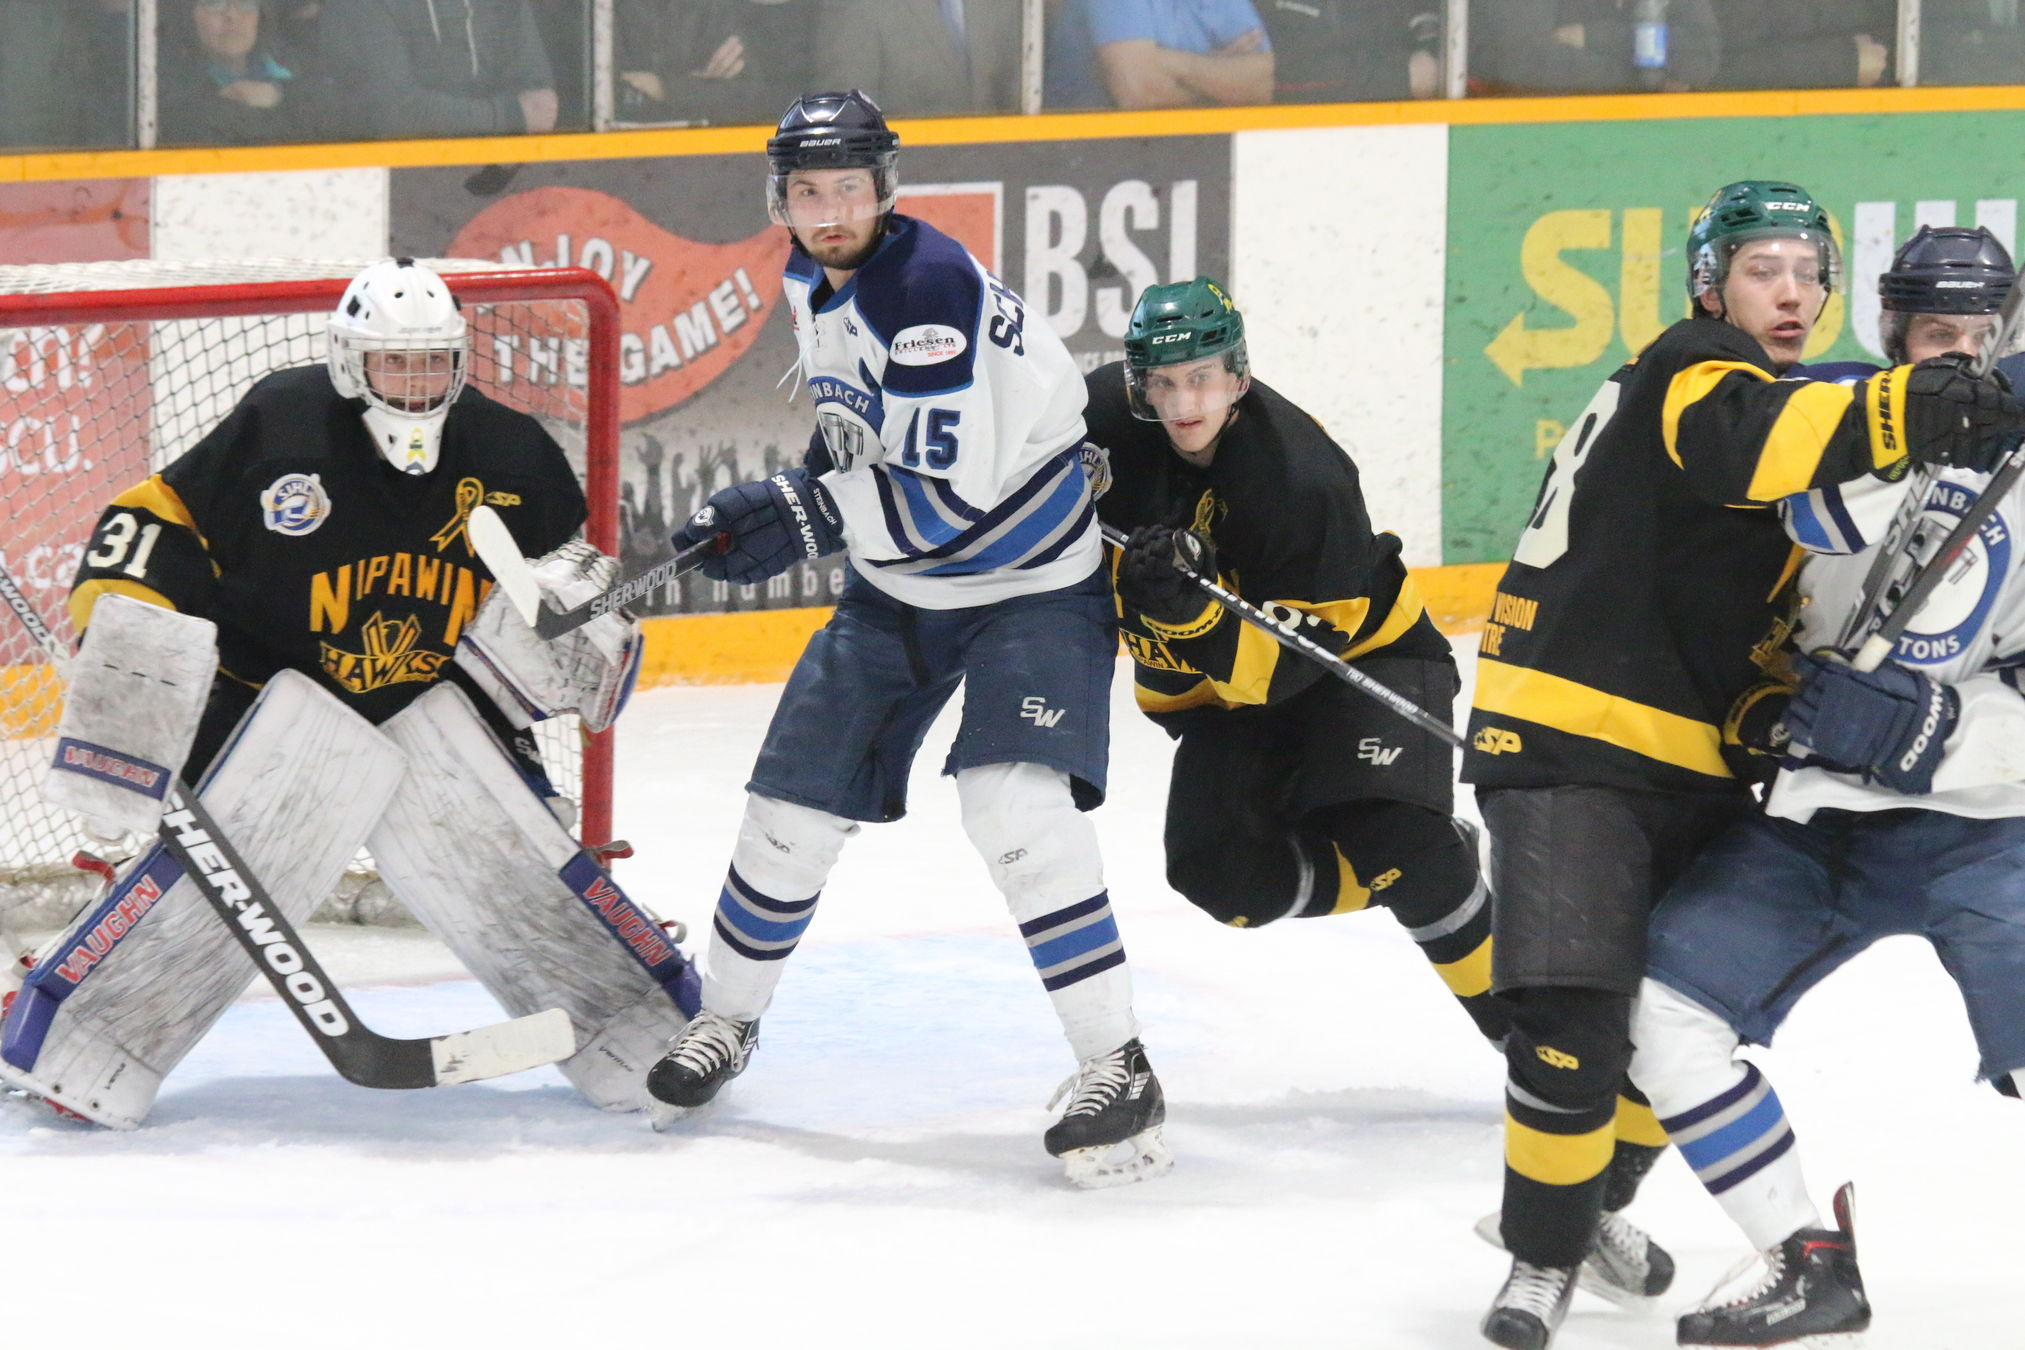 The Steinbach Pistons battle in front of the Nipawin Hawks net Saturday night in Steinbach as the Pistons scored three third period goals to defeat the Hawks 3-1 and tie the ANAVET Cup series 1-1.